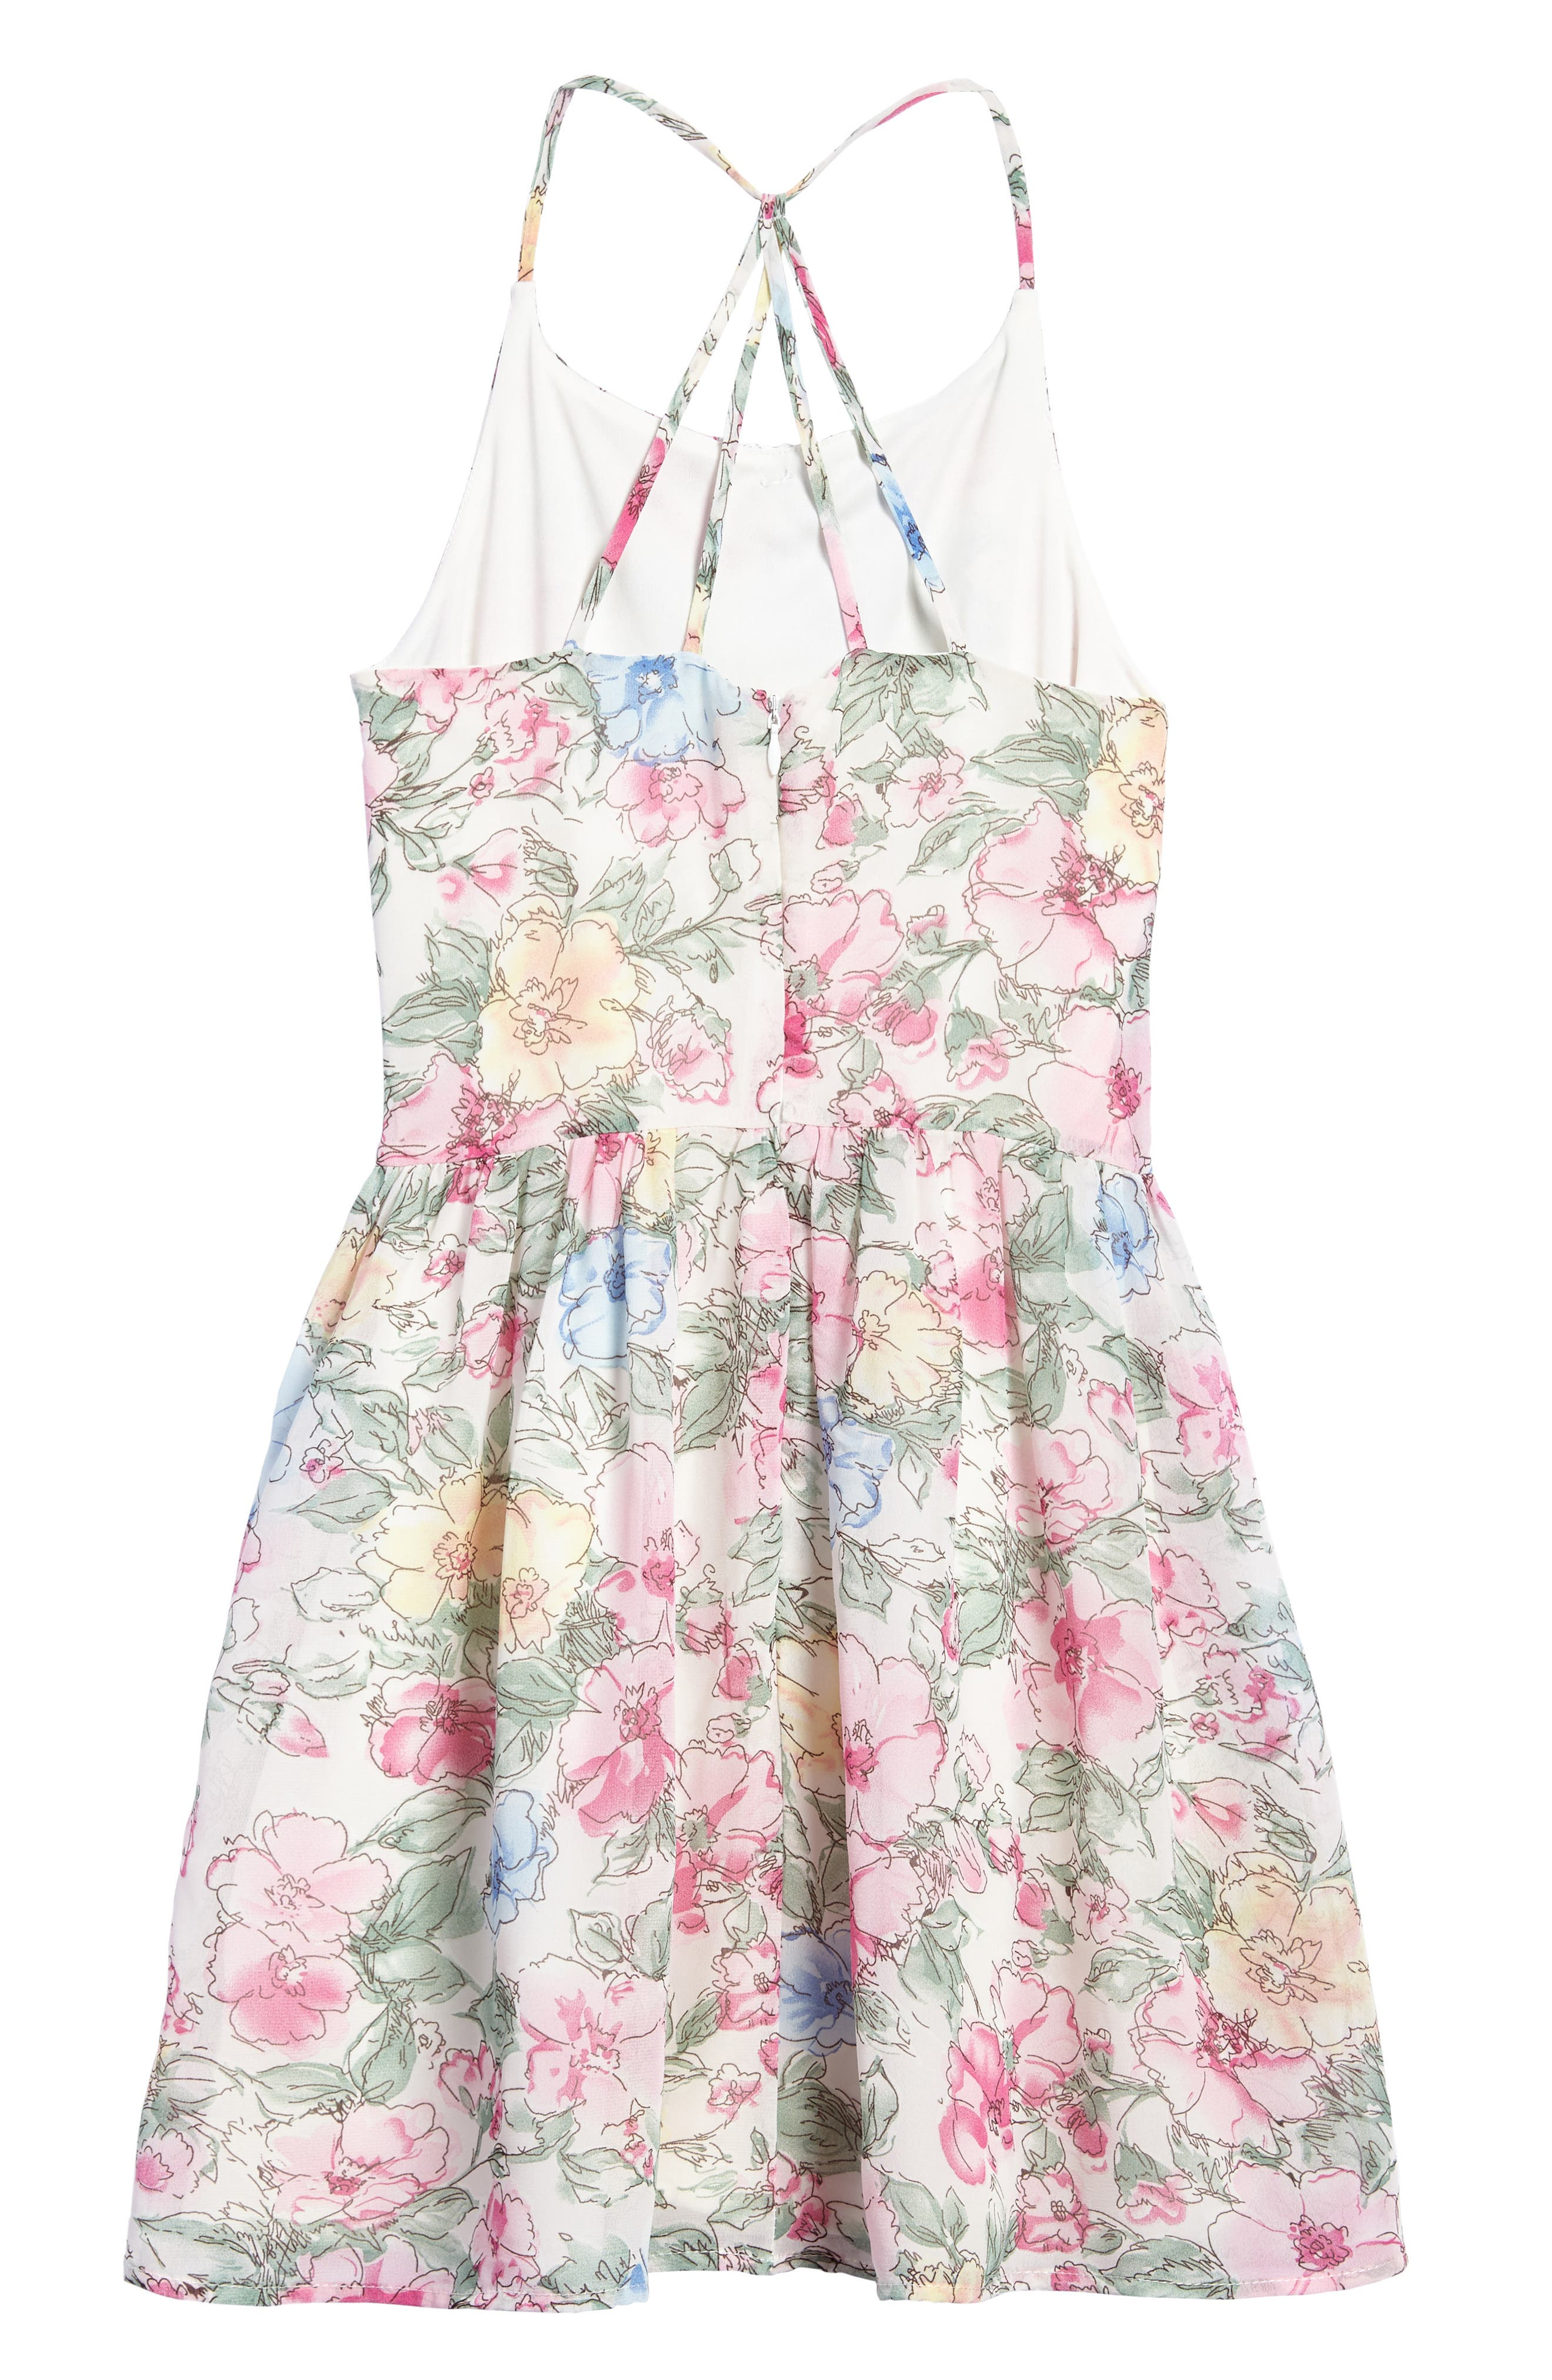 Painted Floral Dress,                             Alternate thumbnail 2, color,                             690